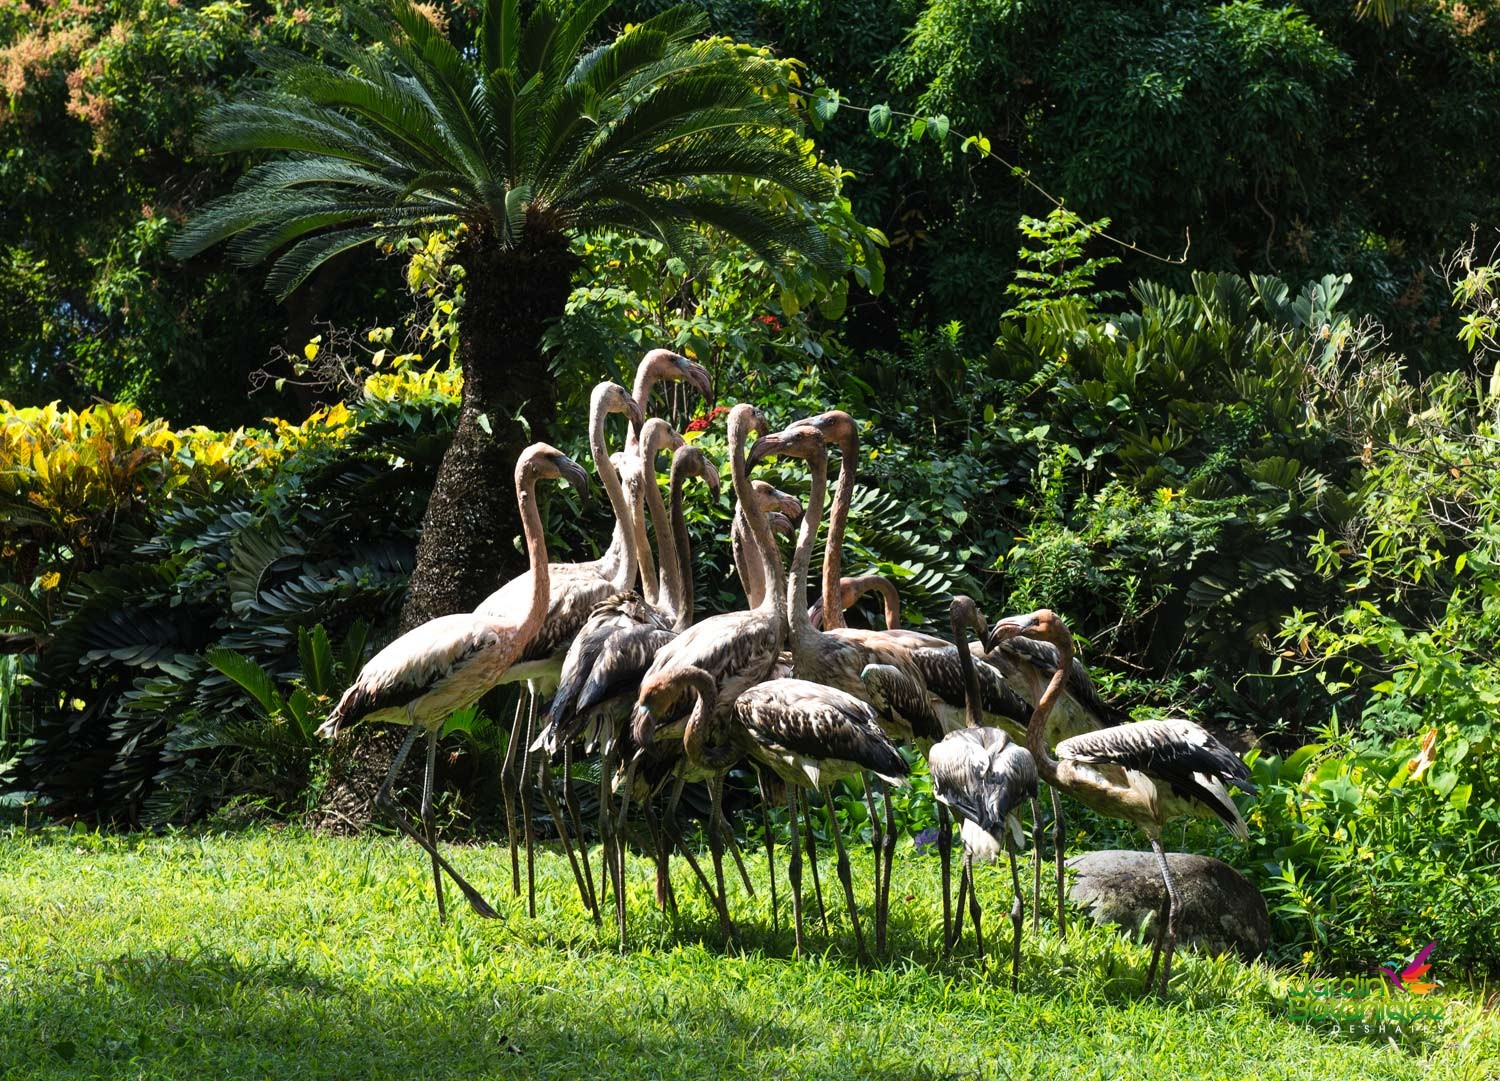 flamants roses jardin botanique deshaies jardin botanique deshaies. Black Bedroom Furniture Sets. Home Design Ideas